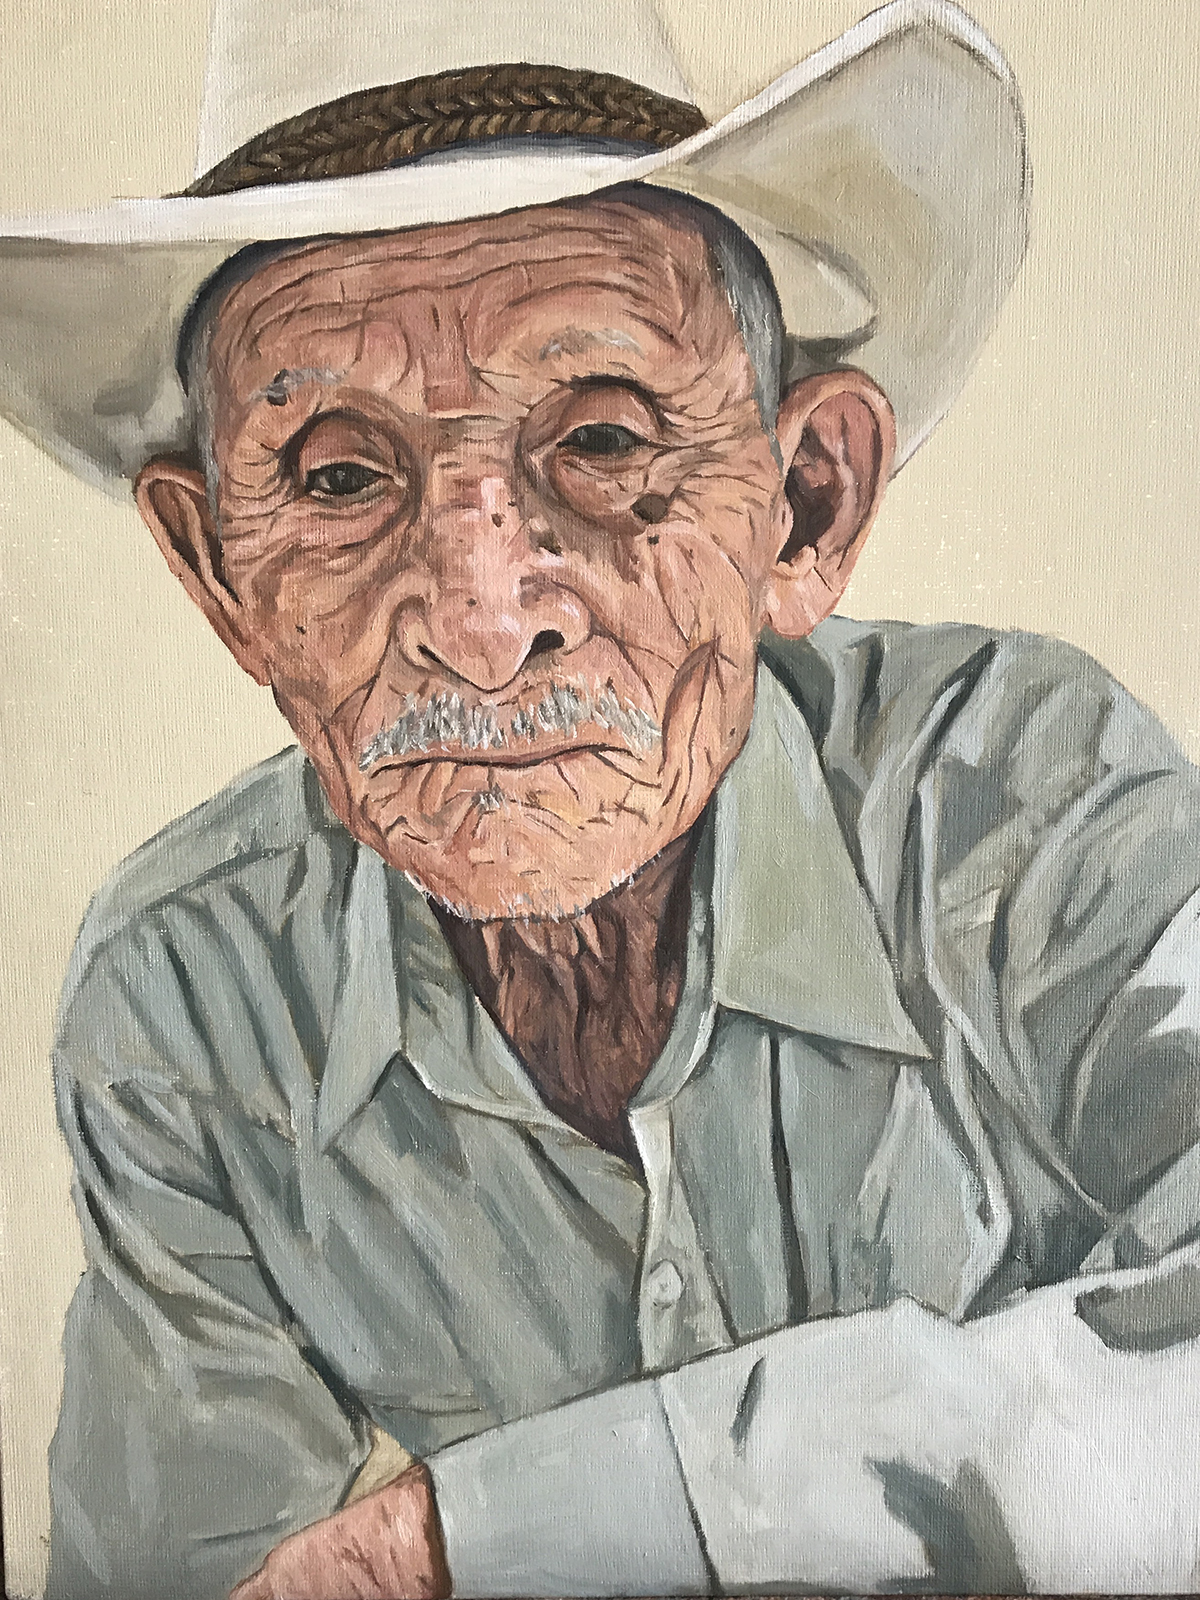 Through Feb. 25 — Art About Agriculture Inspires Awe and Awareness